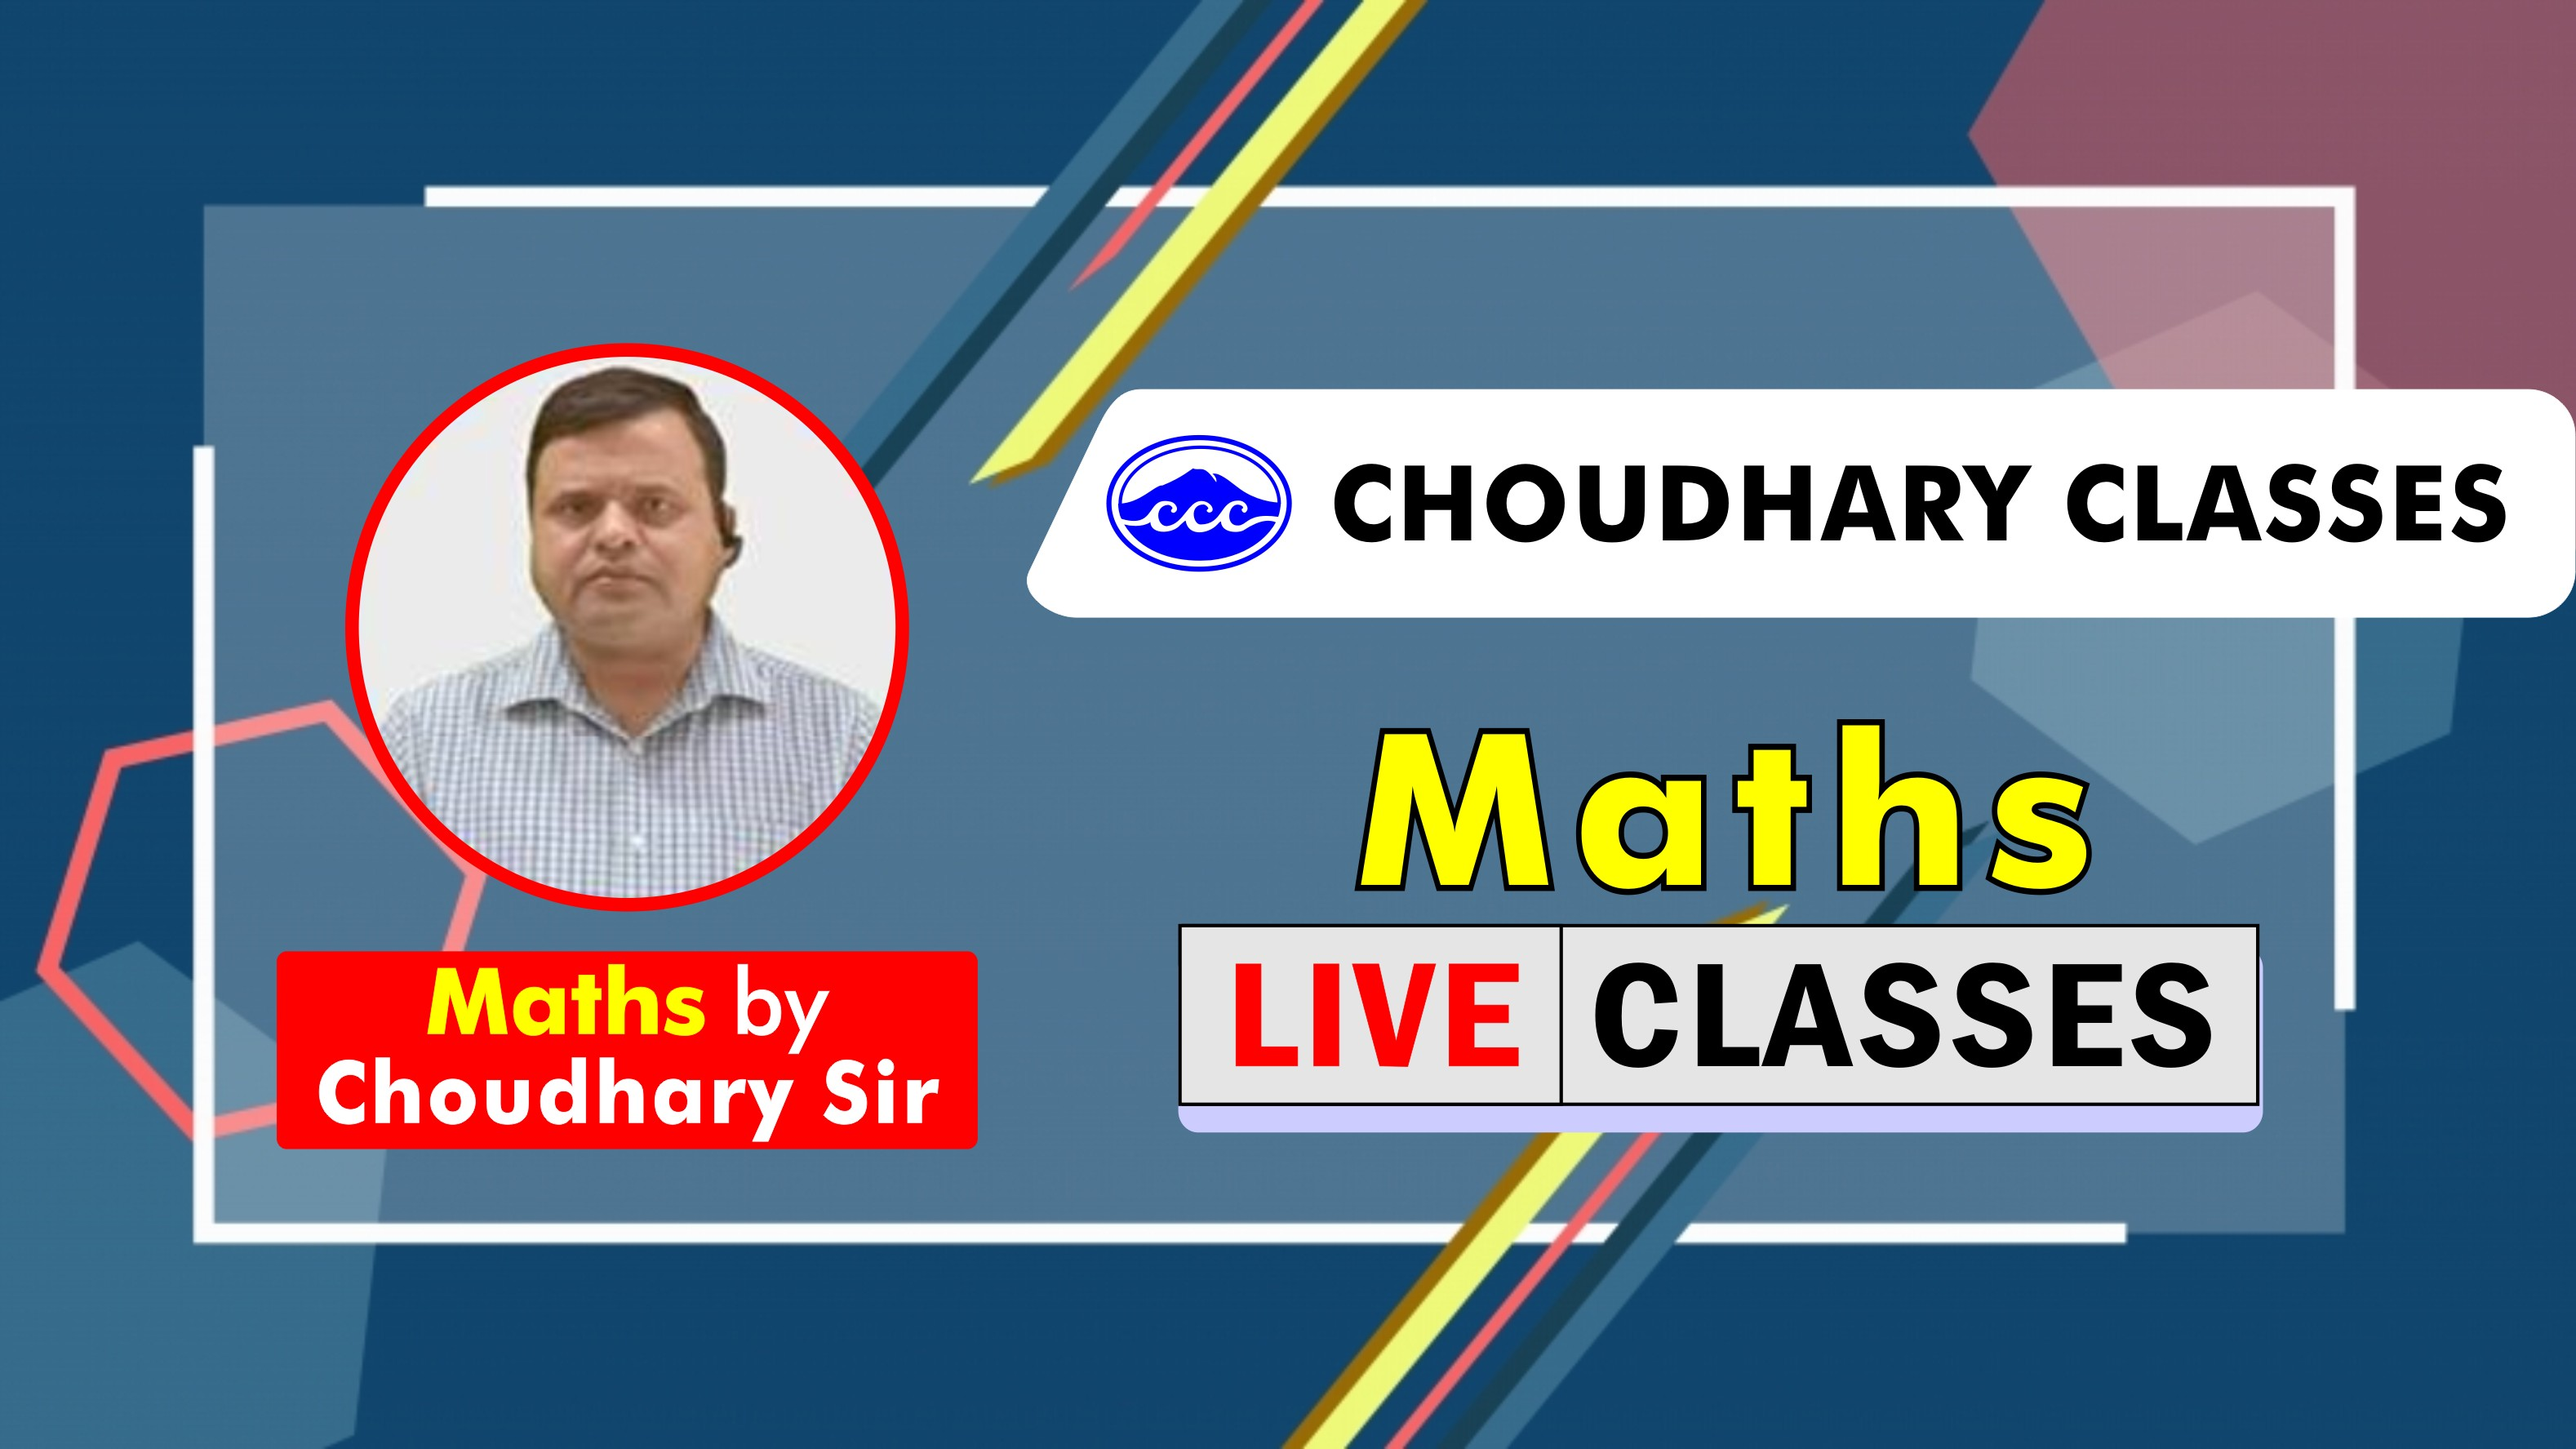 Session : 56 | Profit & Loss by Choudhary Sir